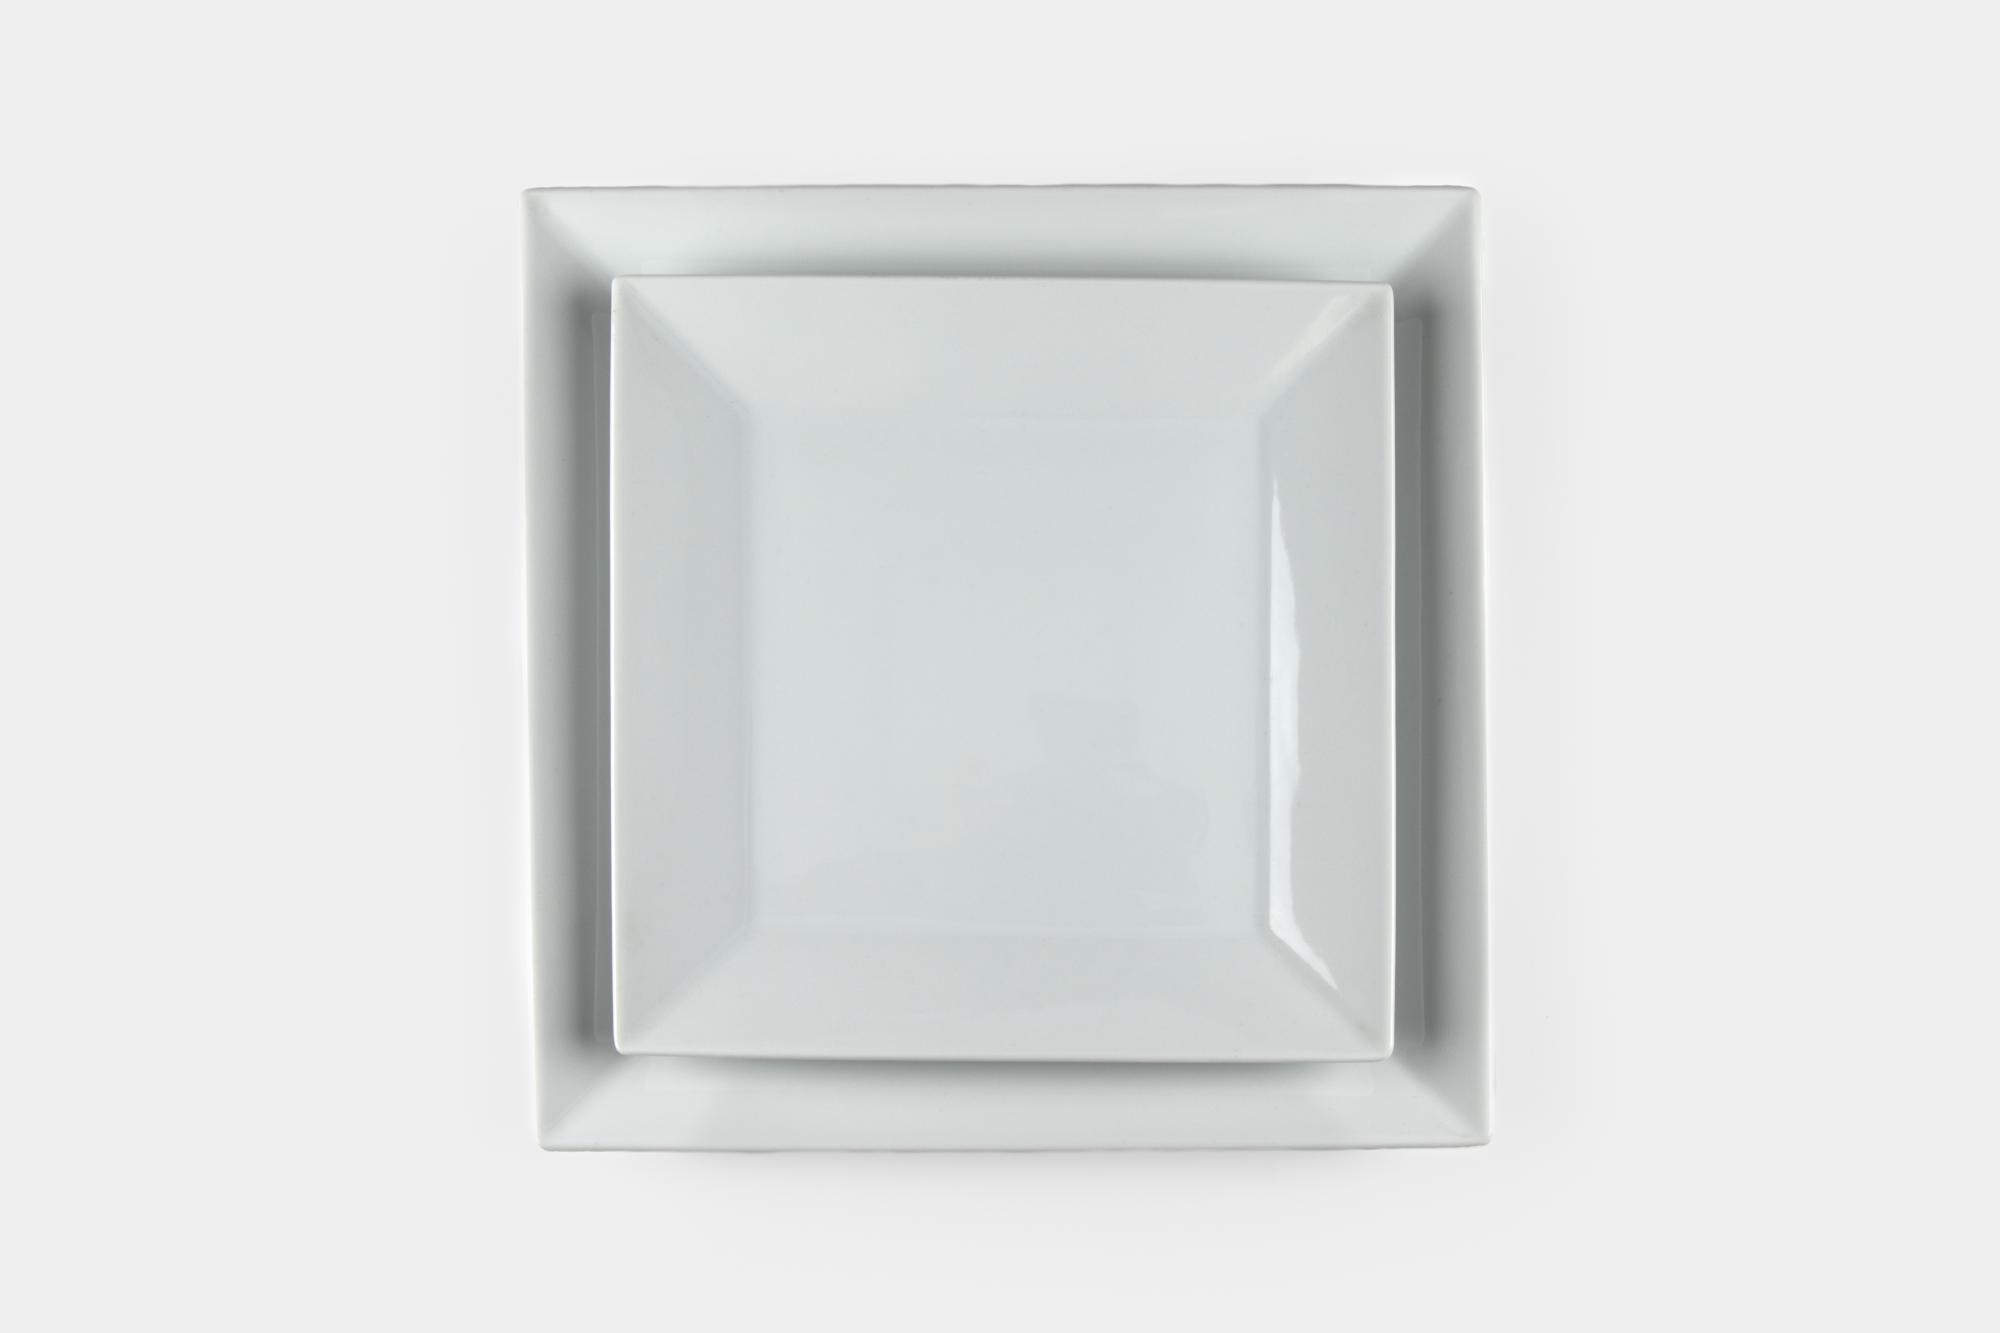 Square plate set - Image 3